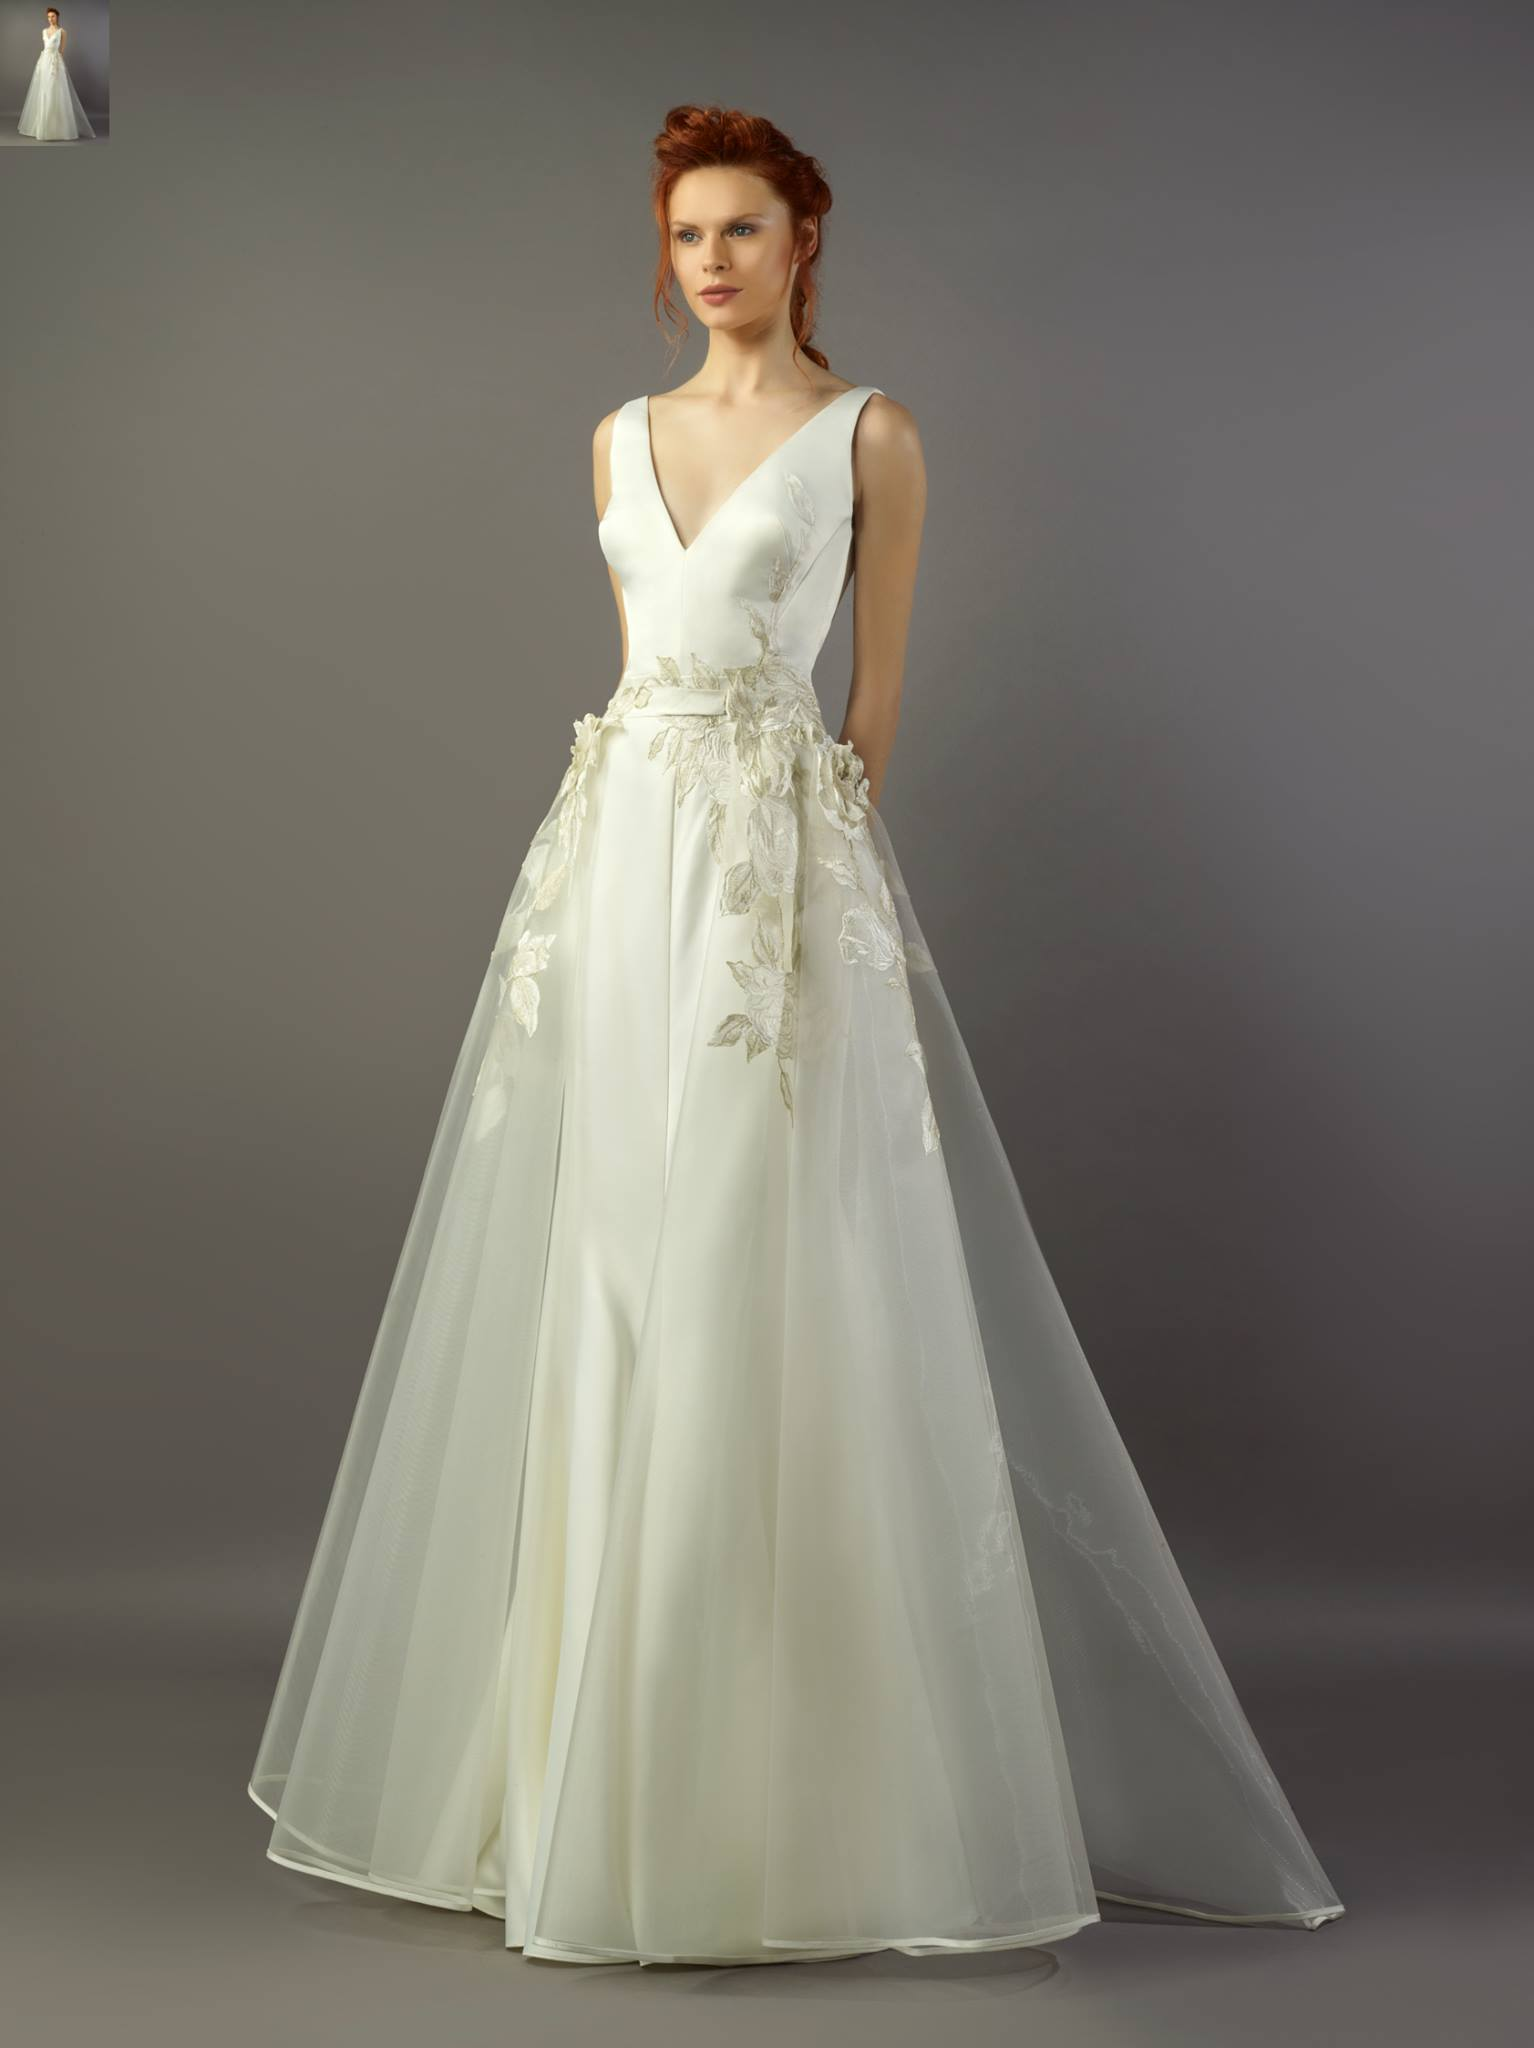 Gemy Maalouf IV 1197 Ivory Gown